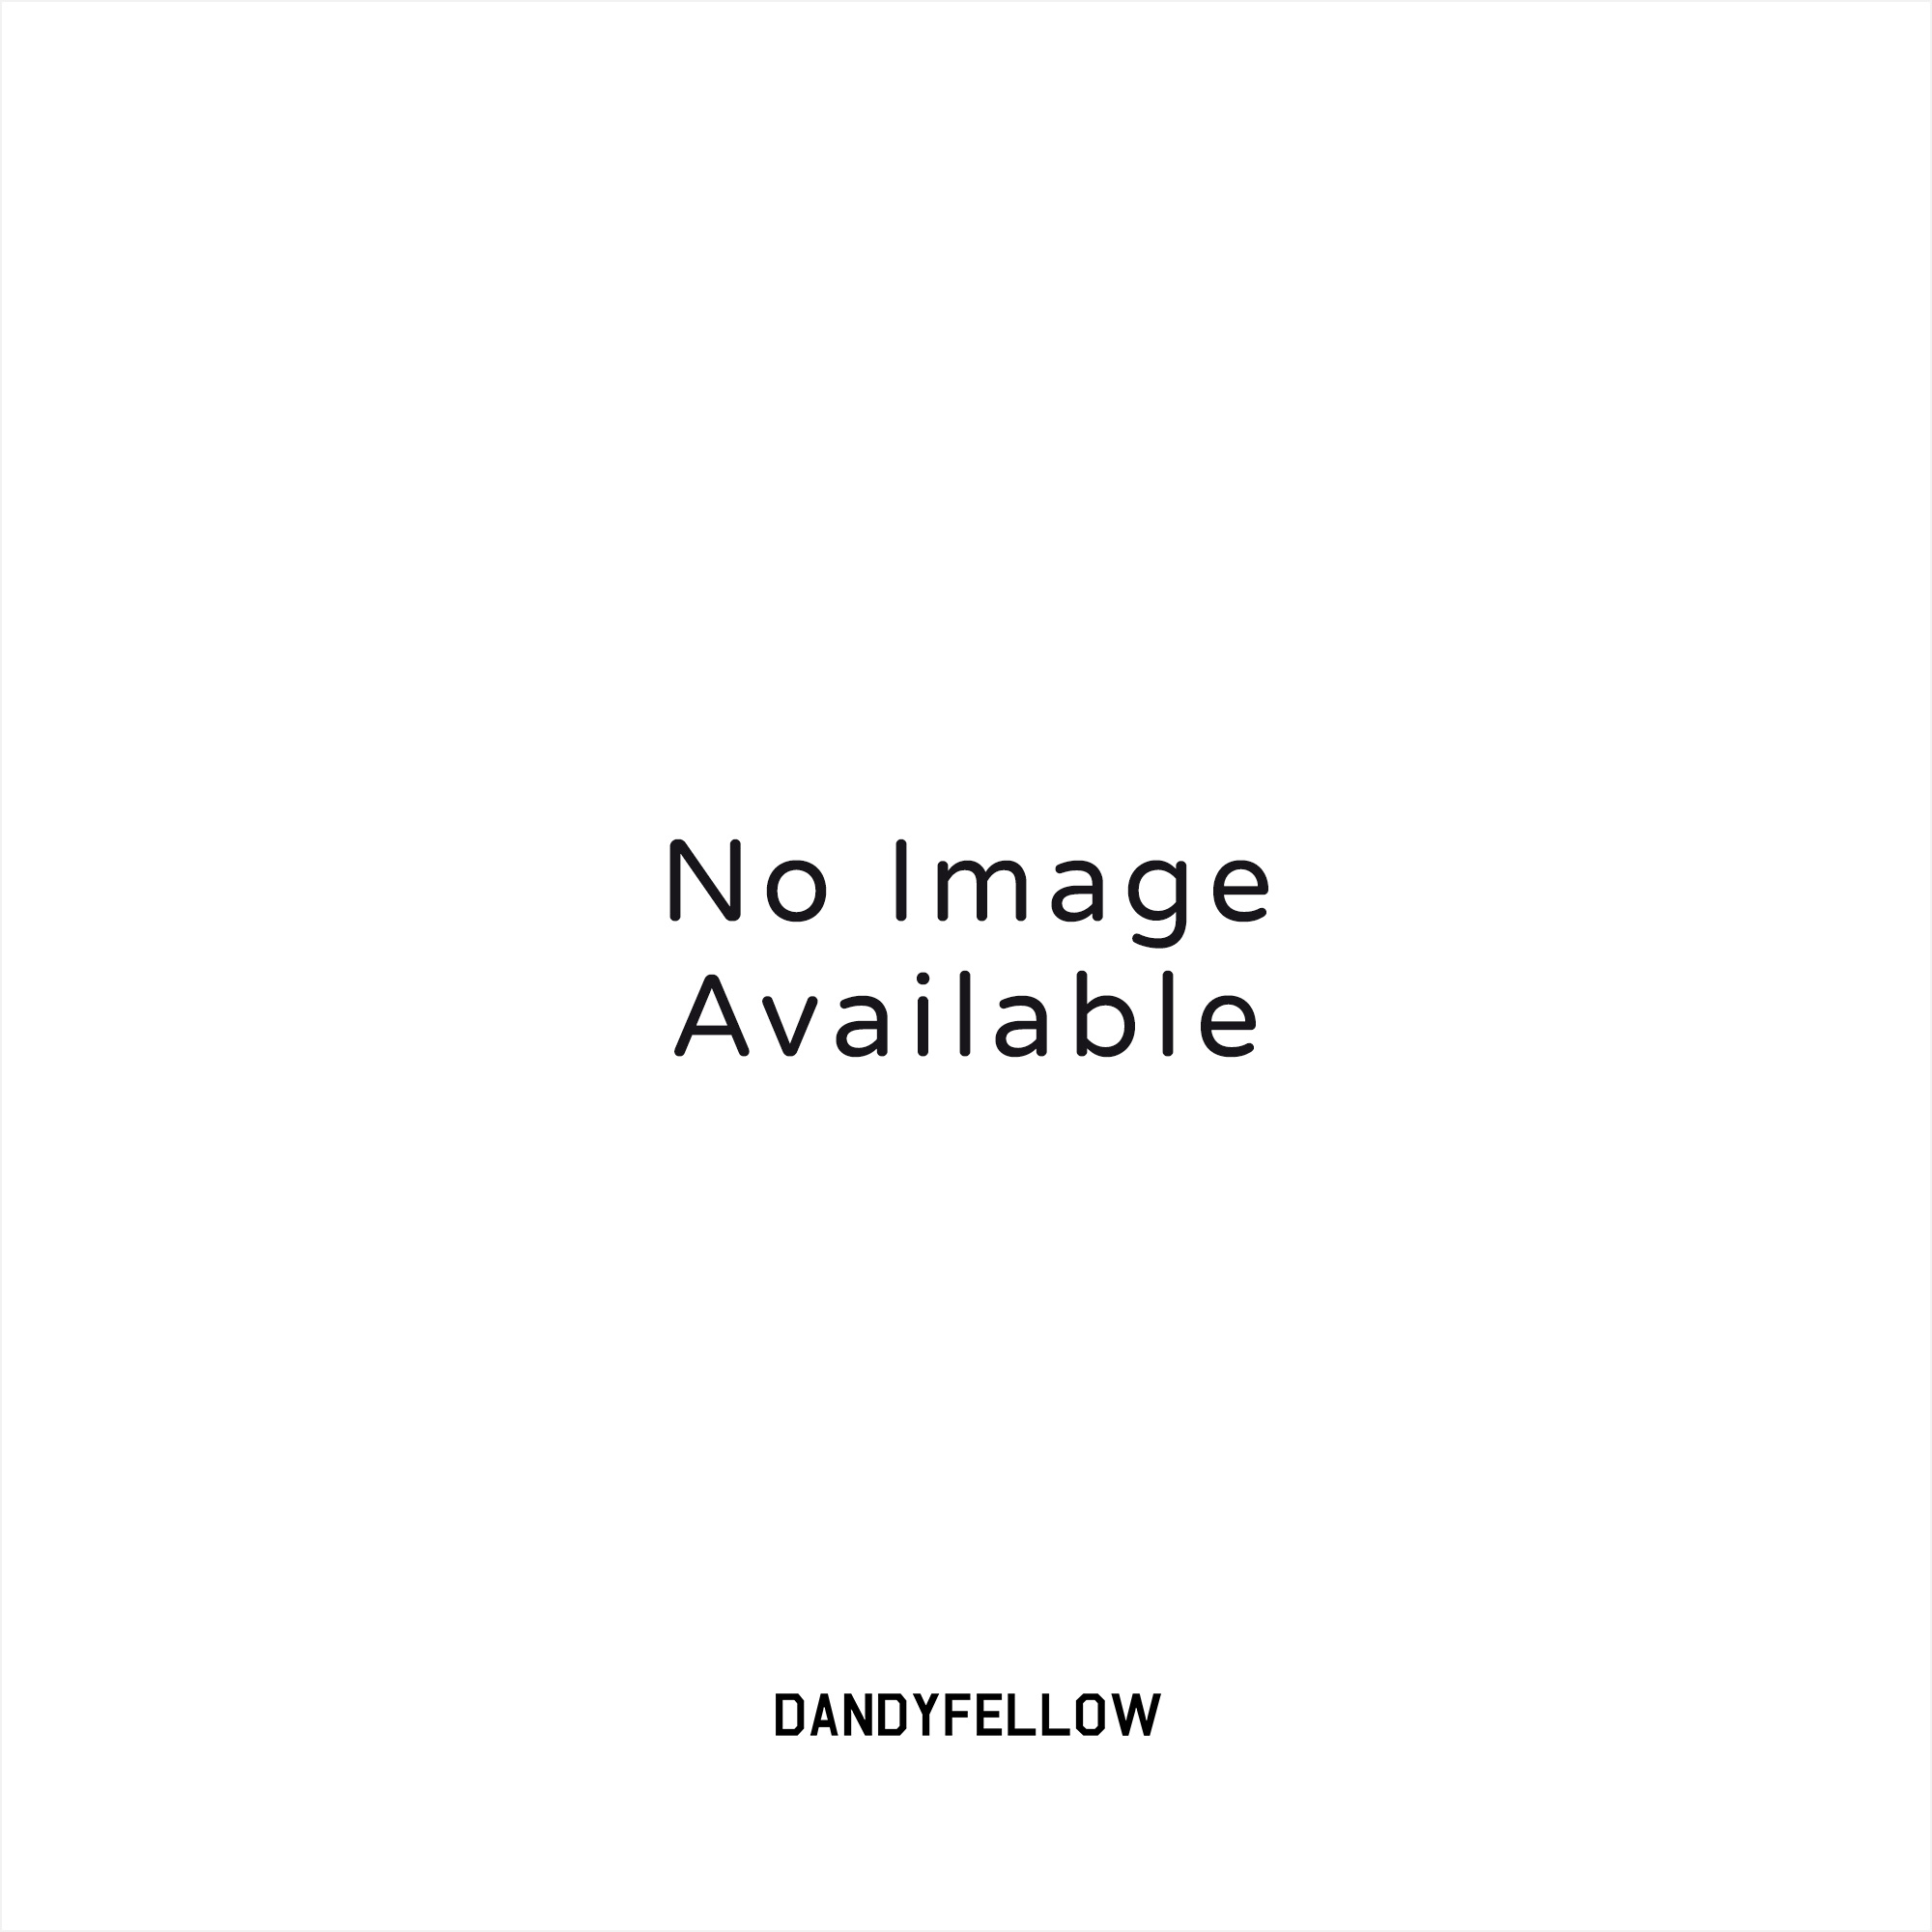 adidas originals eqt support adv ftw white sneakers cp9557. Black Bedroom Furniture Sets. Home Design Ideas